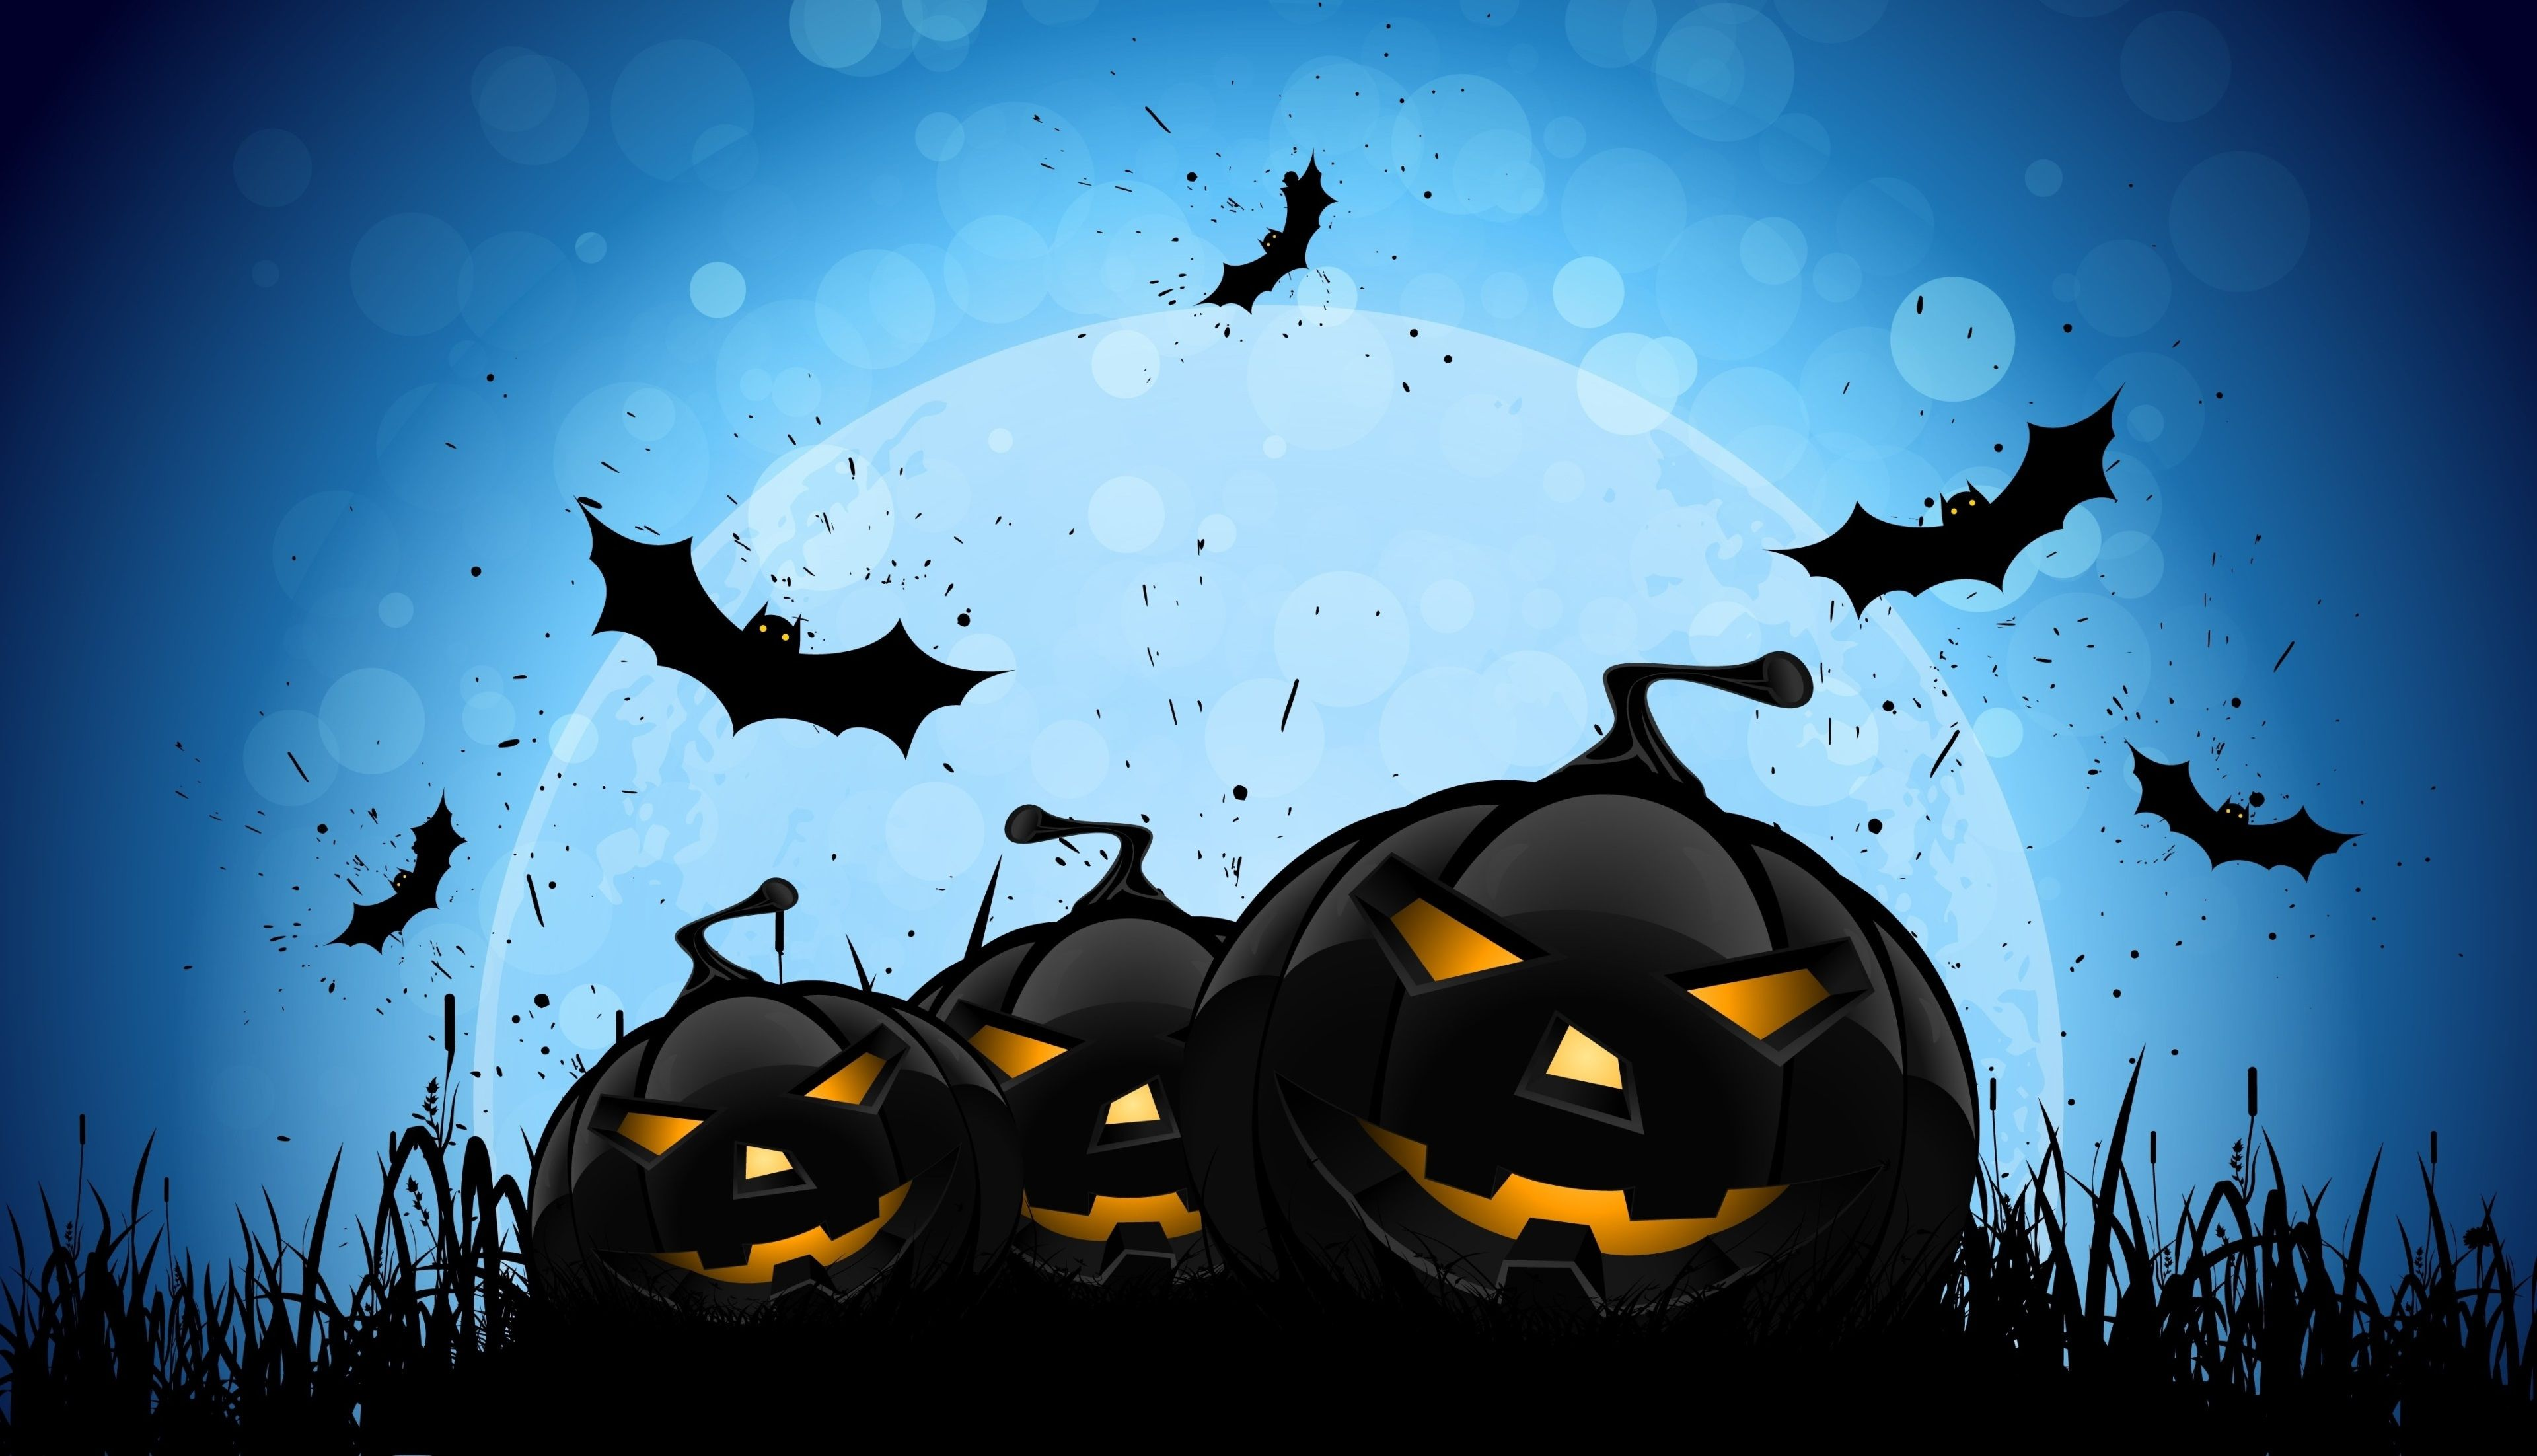 3840x2204 Halloween 4k Wallpaper Hd Halloween Canvas Halloween Wallpaper Halloween Backdrop